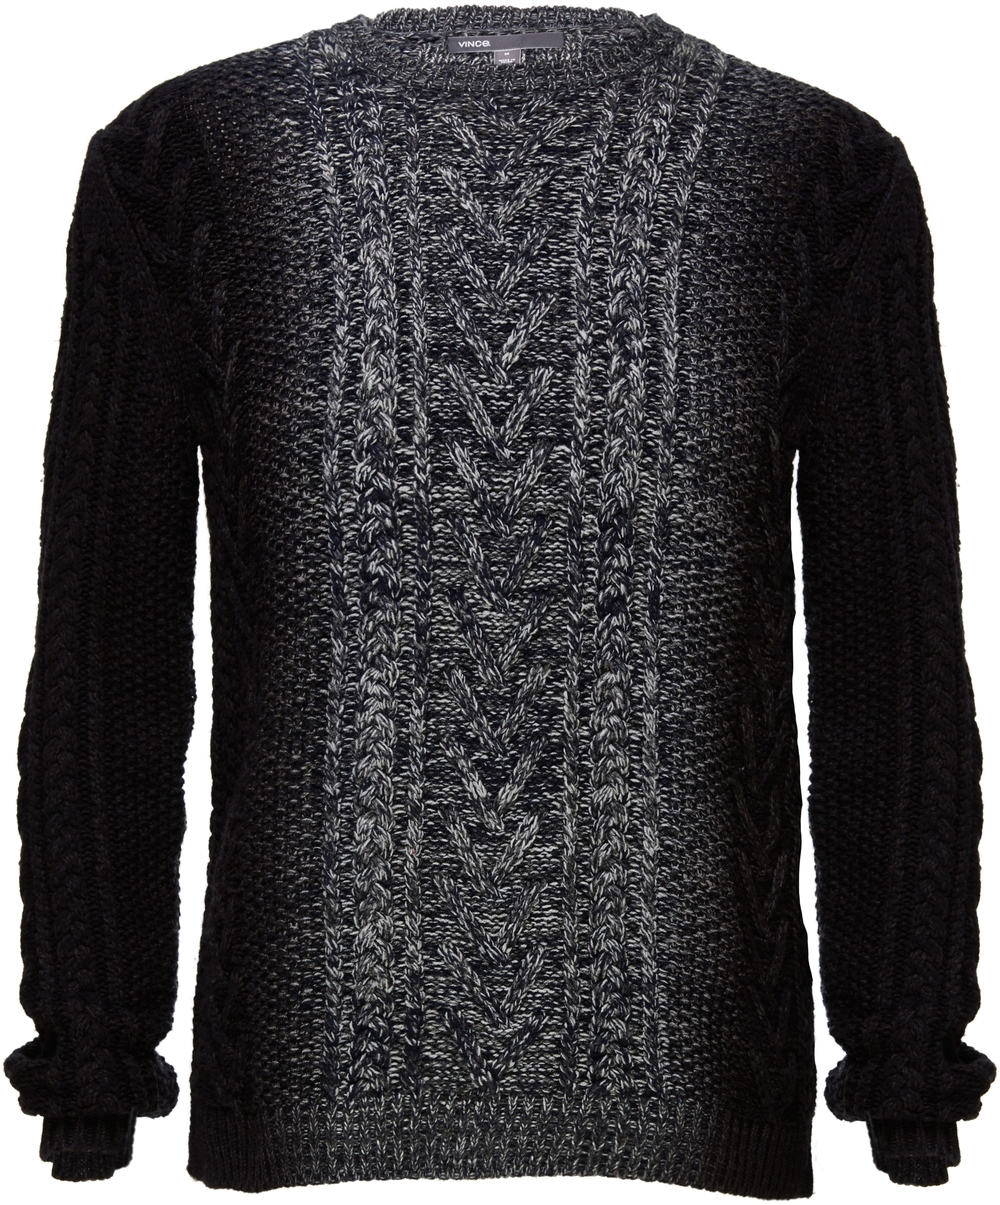 VINCE Wool Cashmere Marled Cable Knit Dégradé Crew Neck Sweater, $395